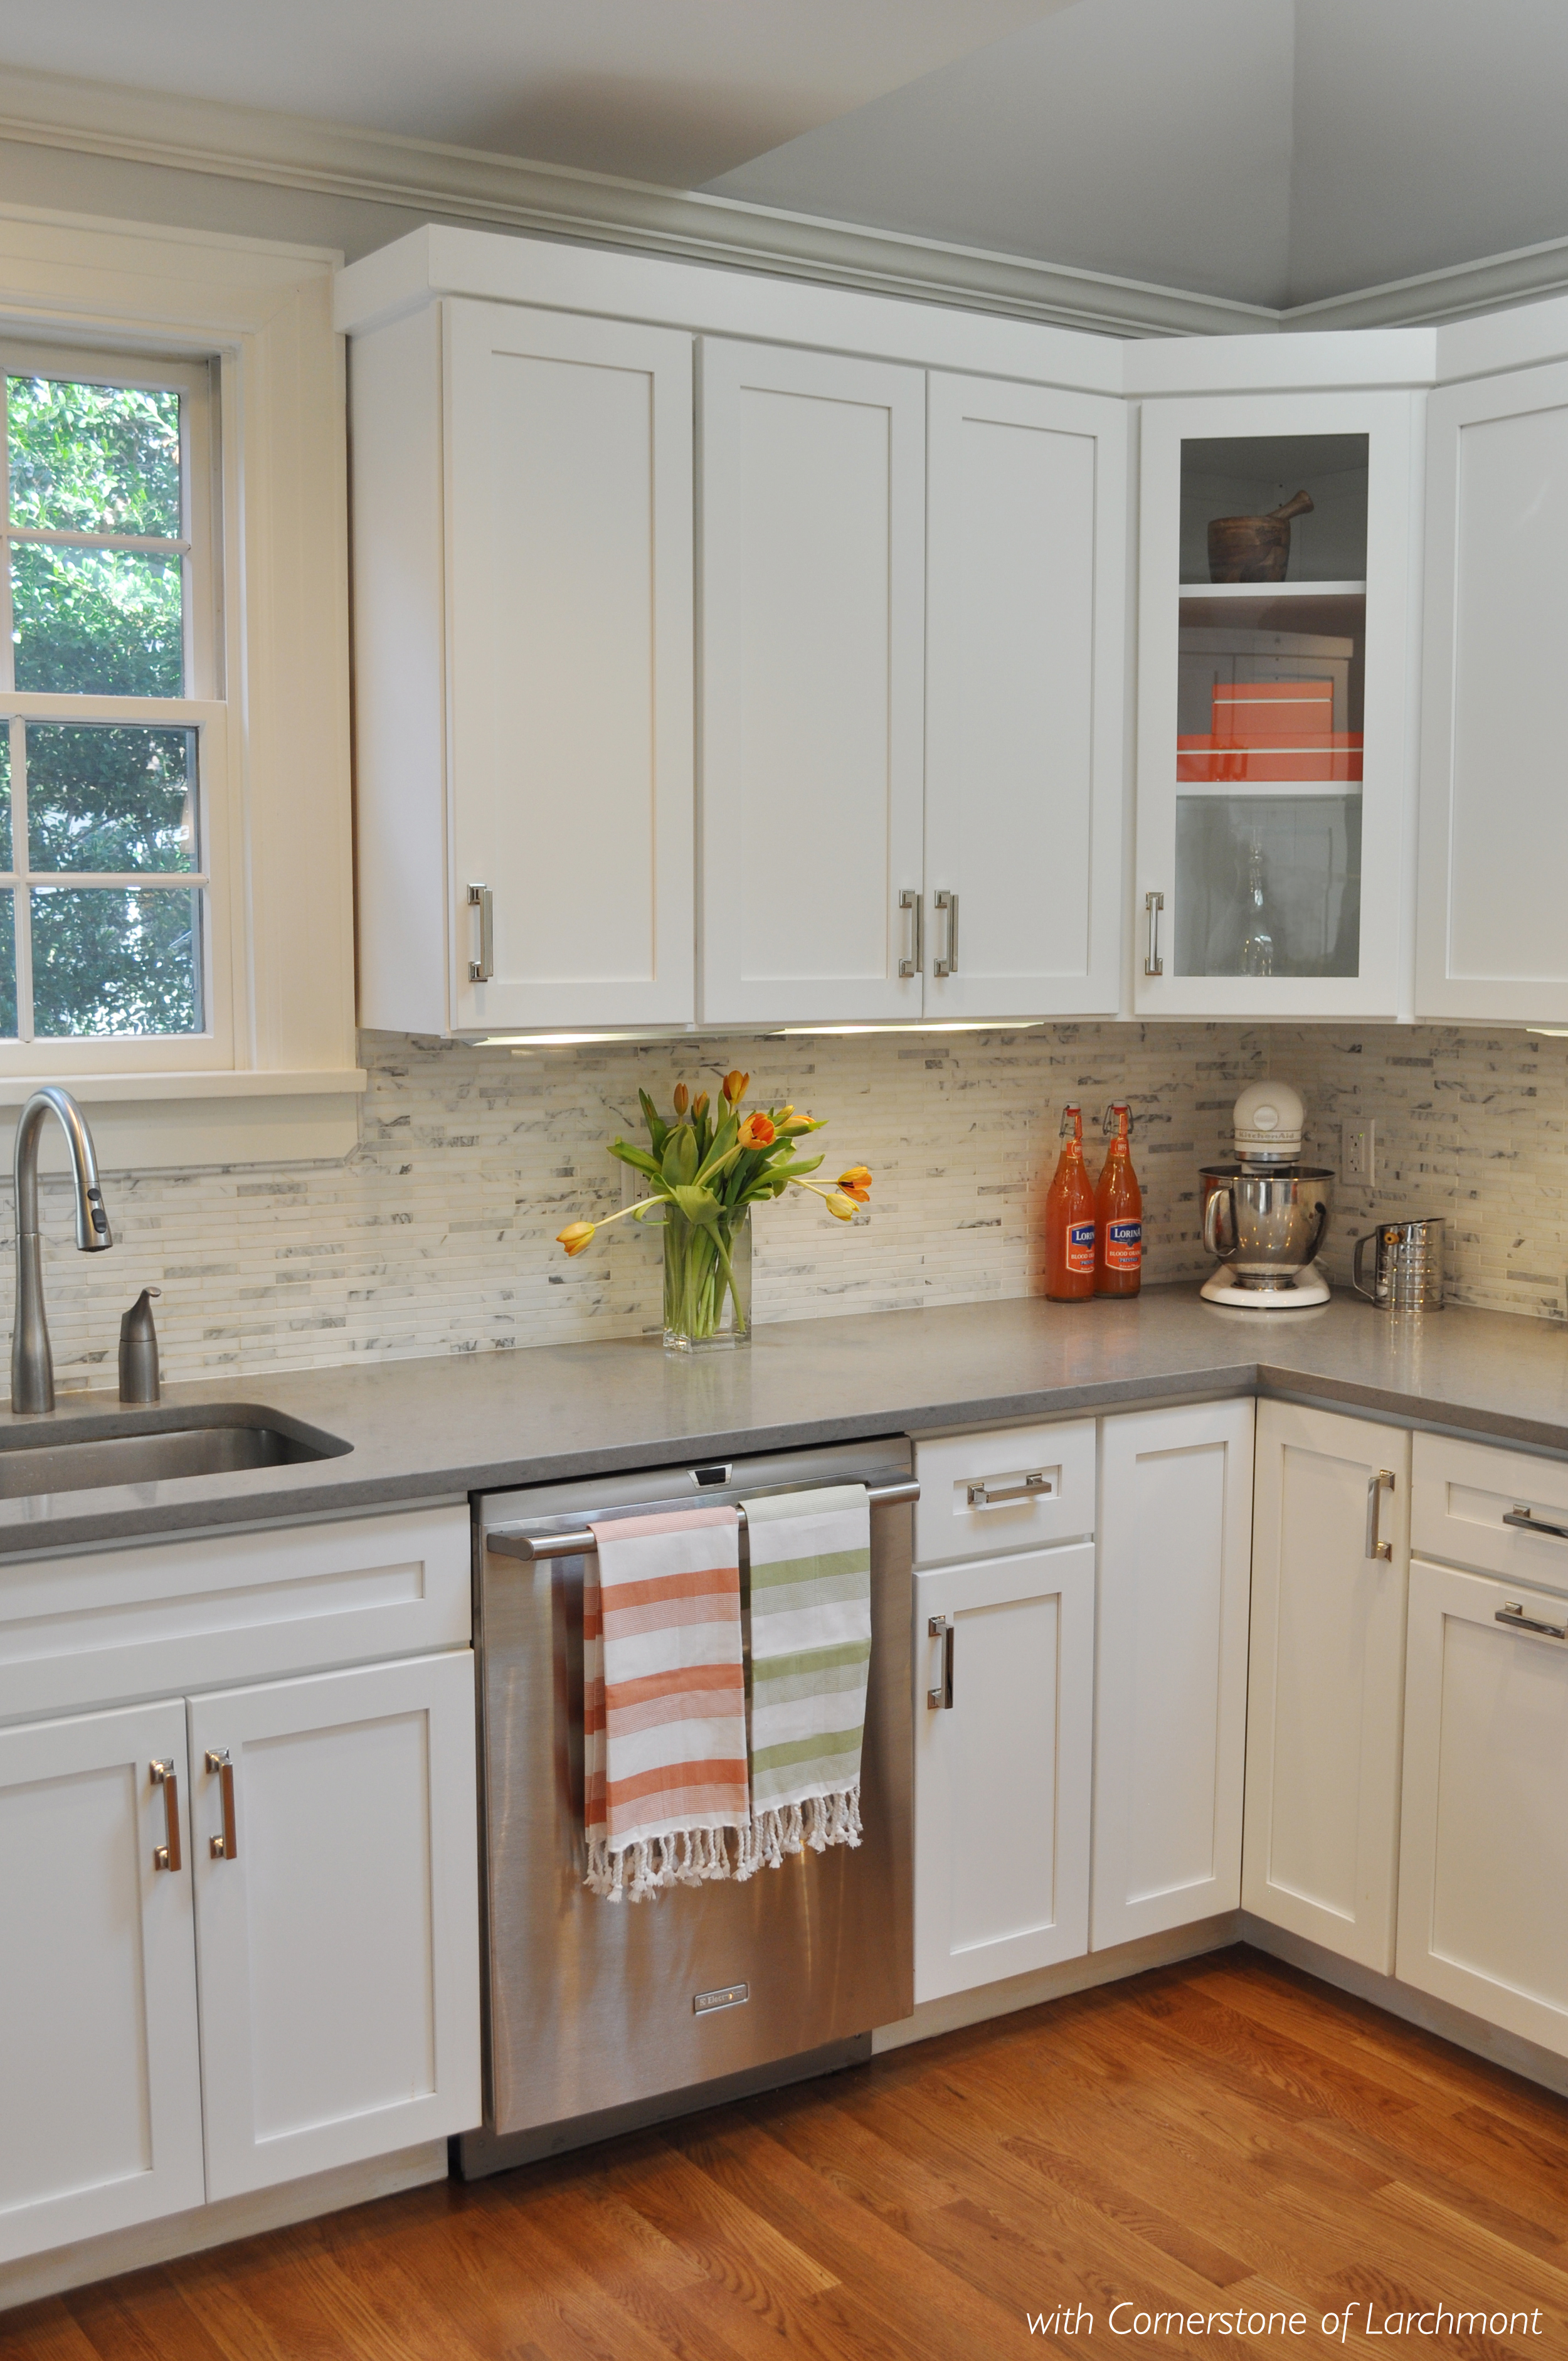 Kim Annick Mitchell_Interior Designer_Larchmont Kitchen_White Cabinets_Caesarstone Countertops_with Cornerstone of Larchmont.jpg